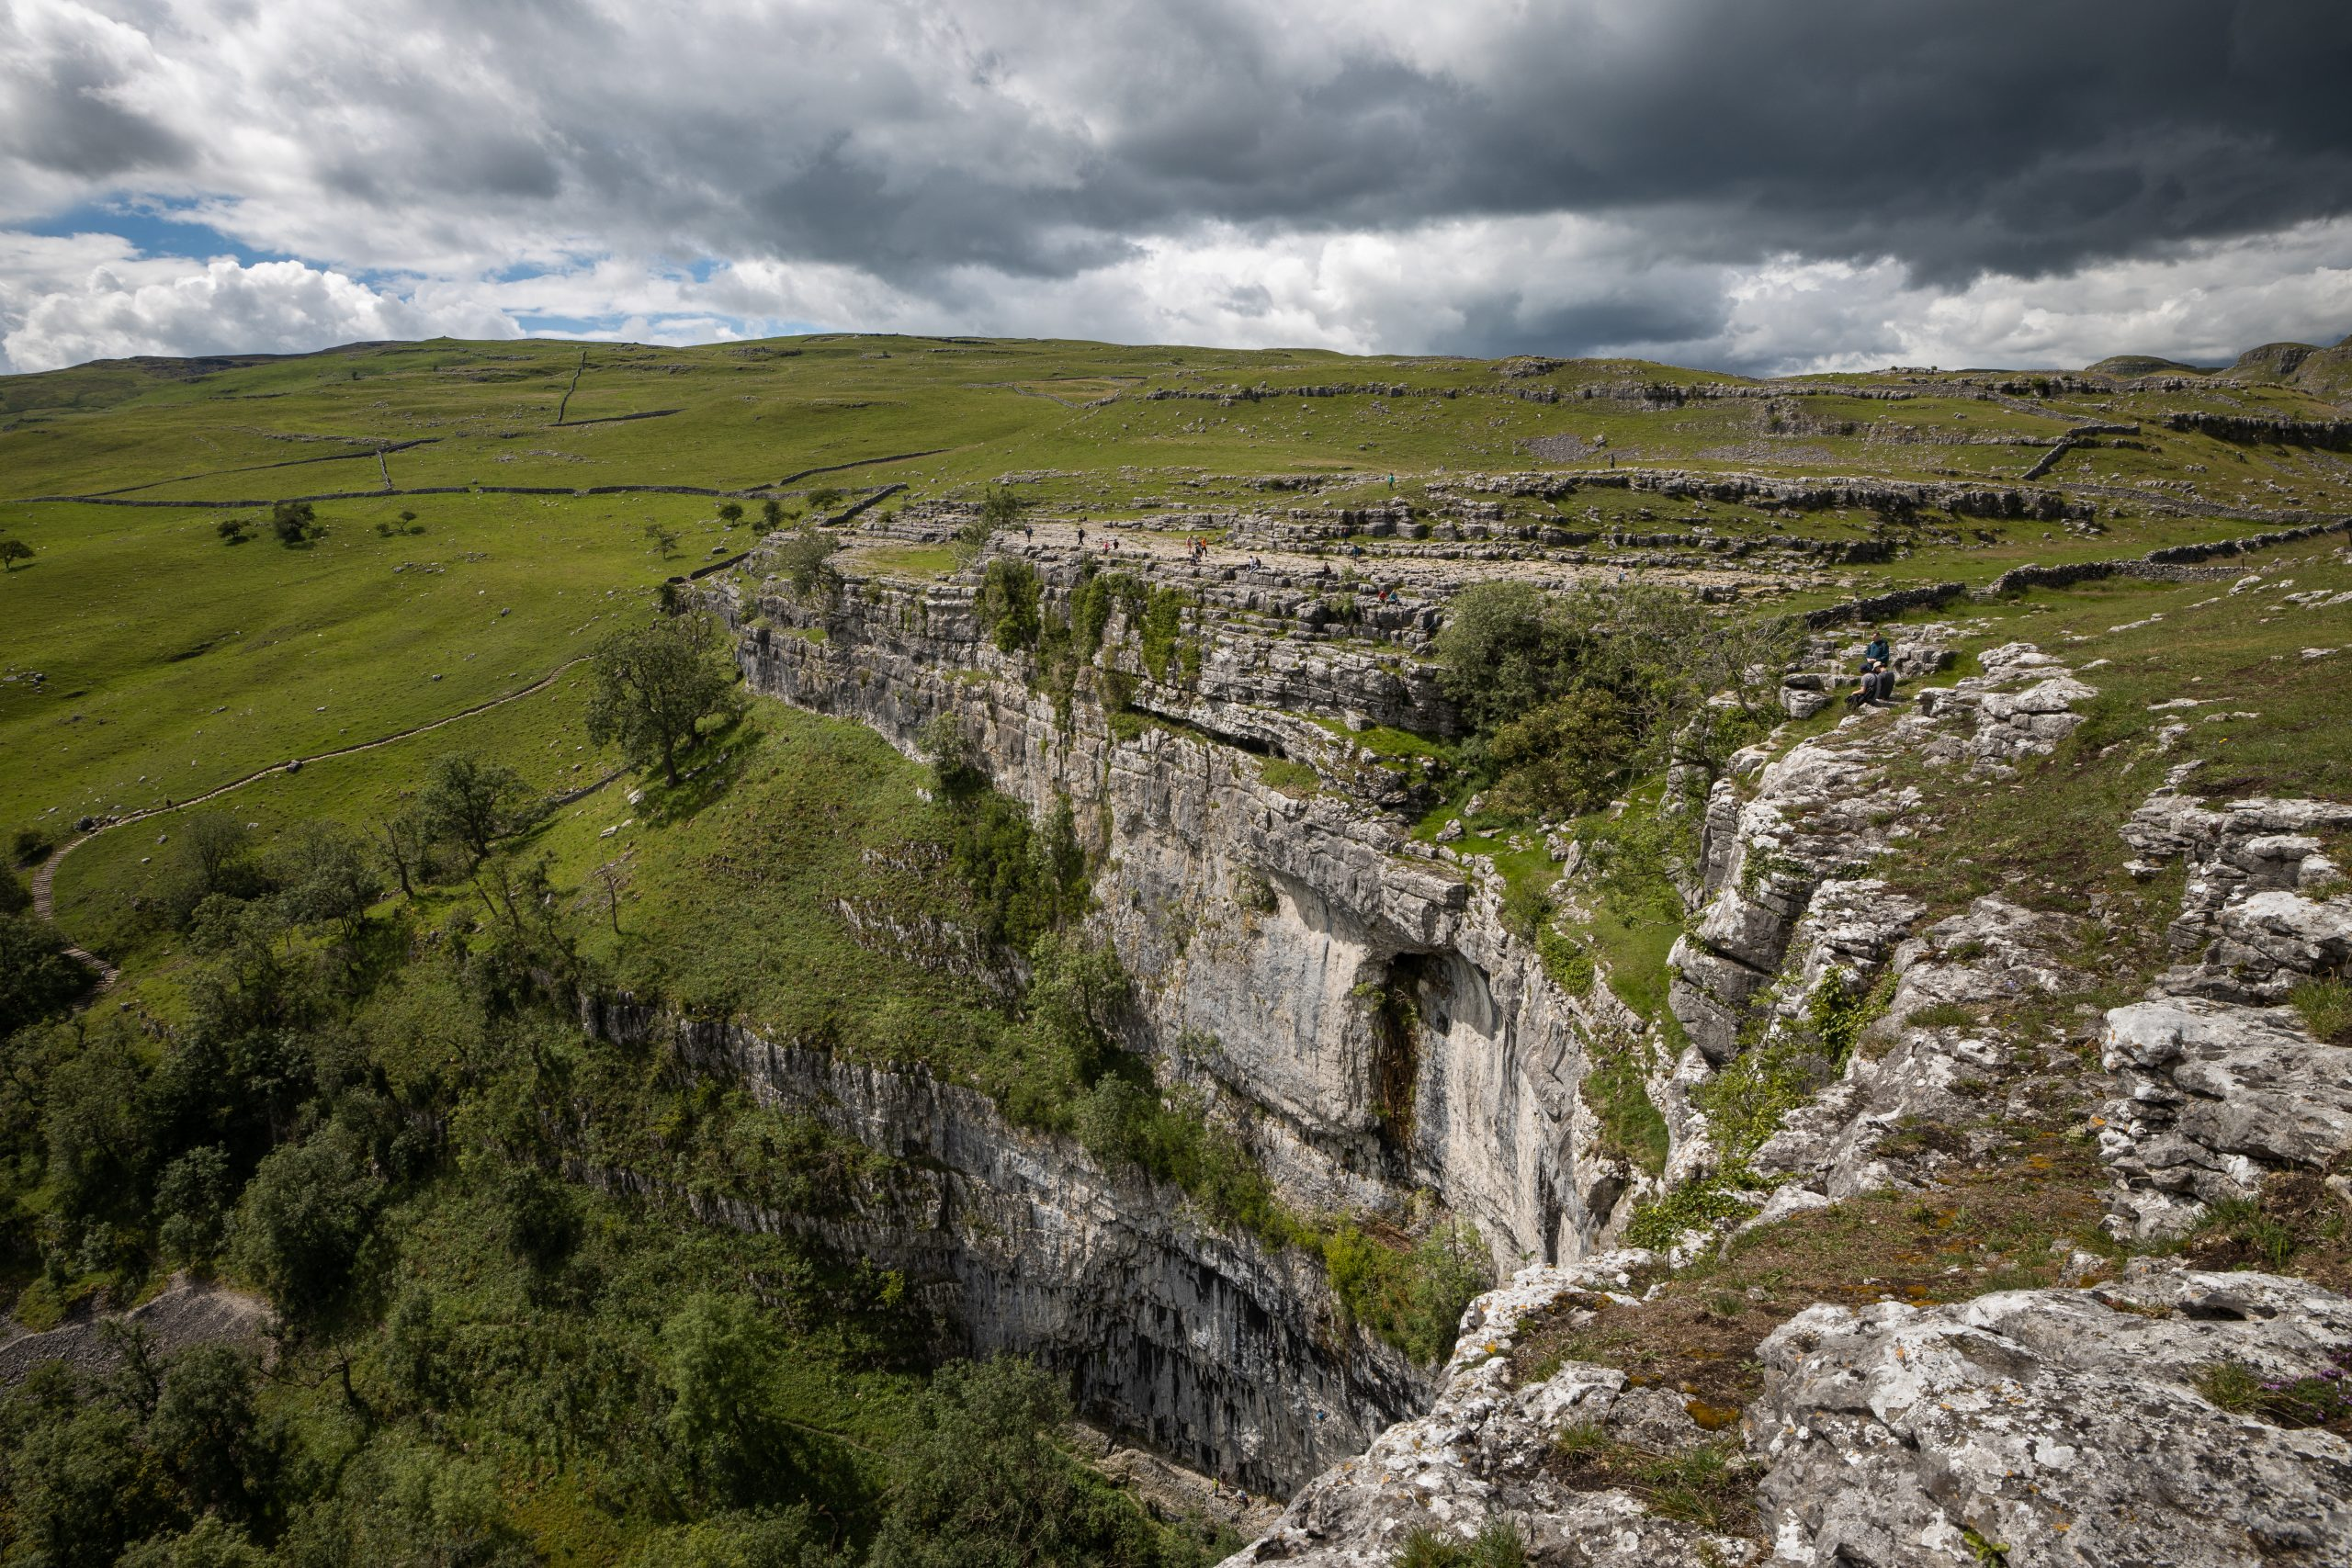 The dramatic sweep of the limestone cliffs of Malham Cove, viewed from the top on a guided walk